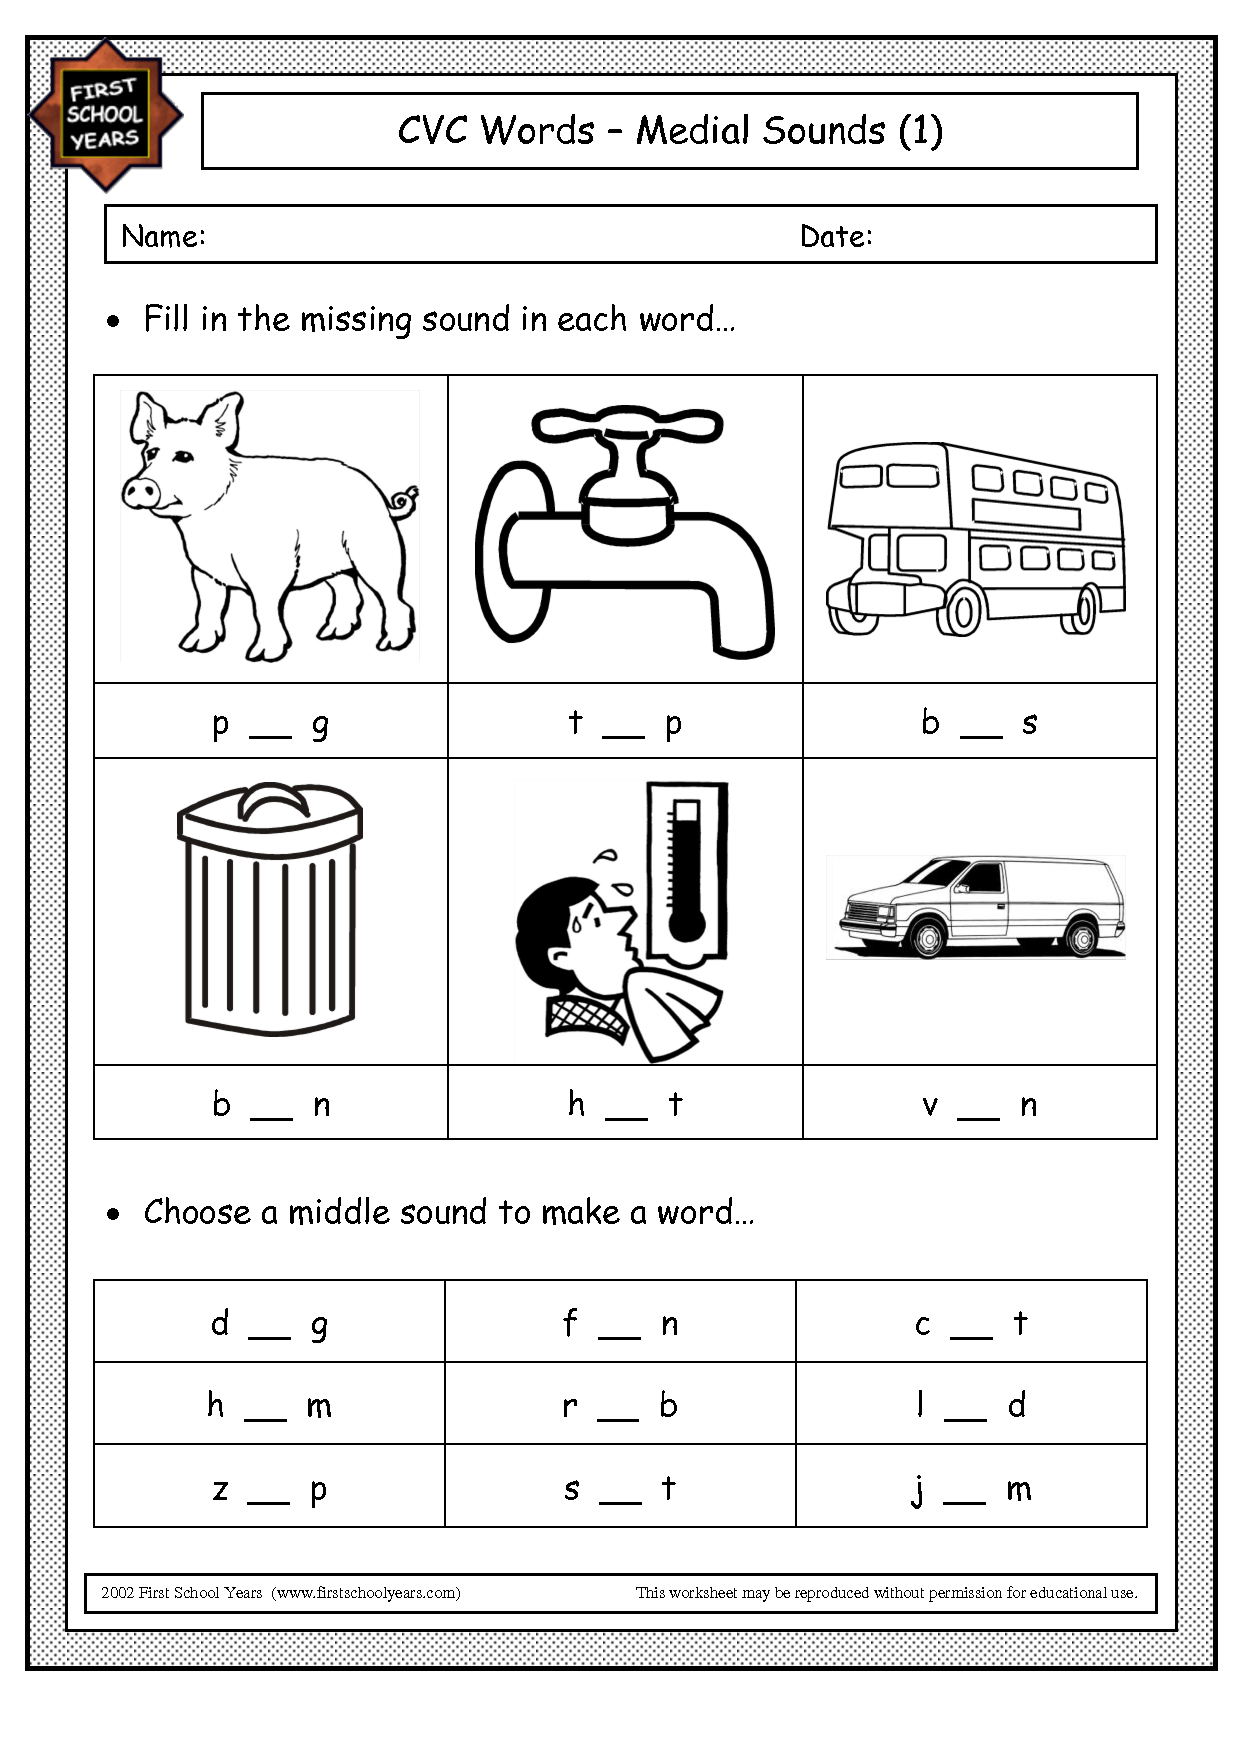 15 Best Images Of Cvc Words Medial Sounds Worksheets